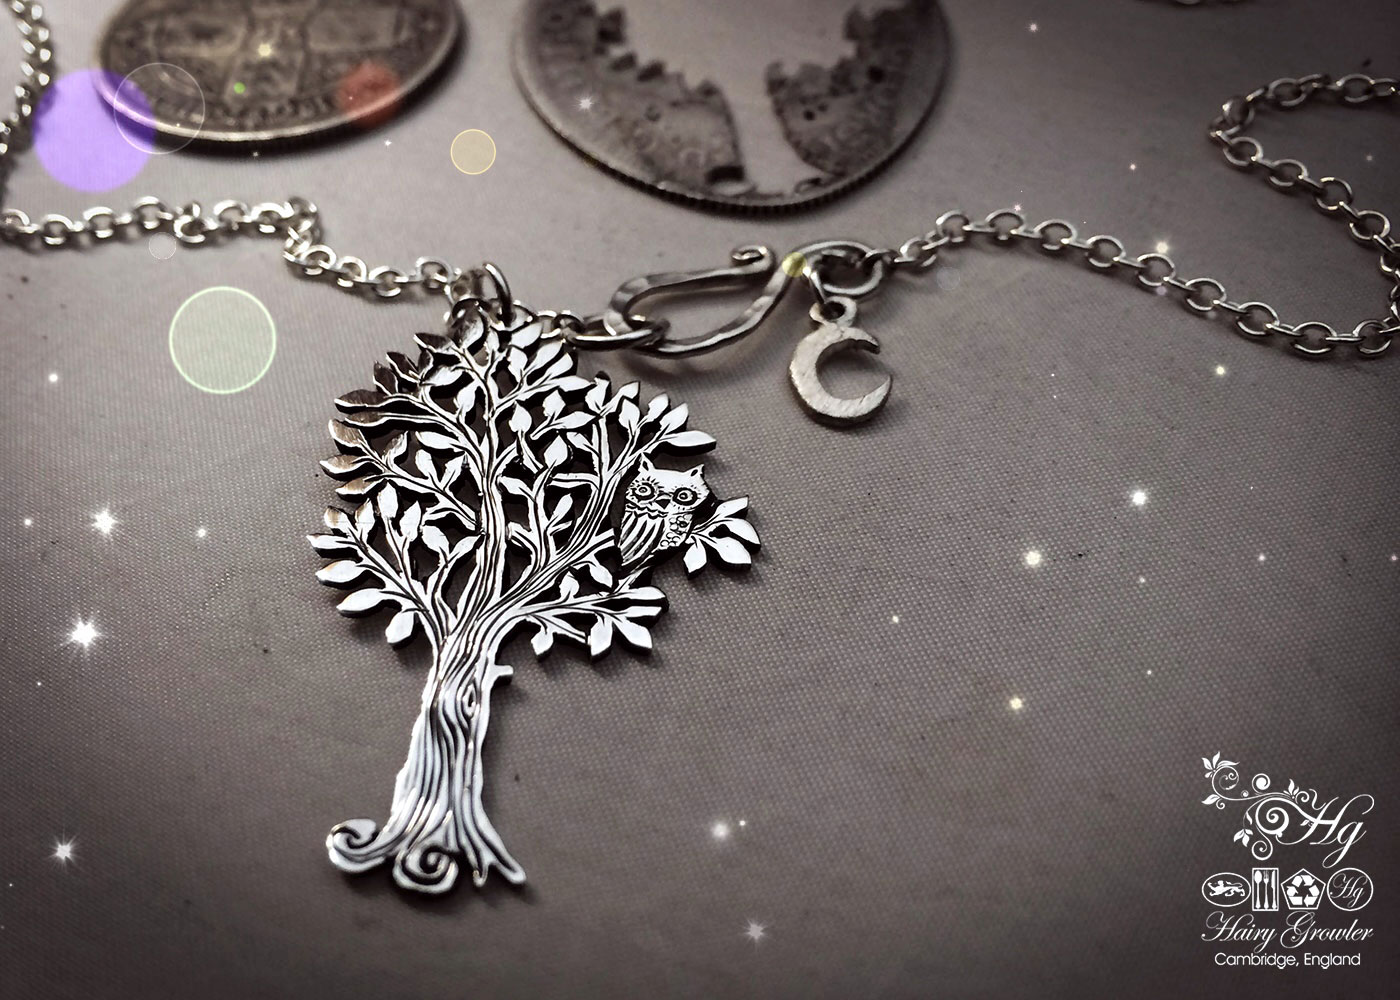 Handcrafted and repurposed silver woodland tree with owl sitting in the branches